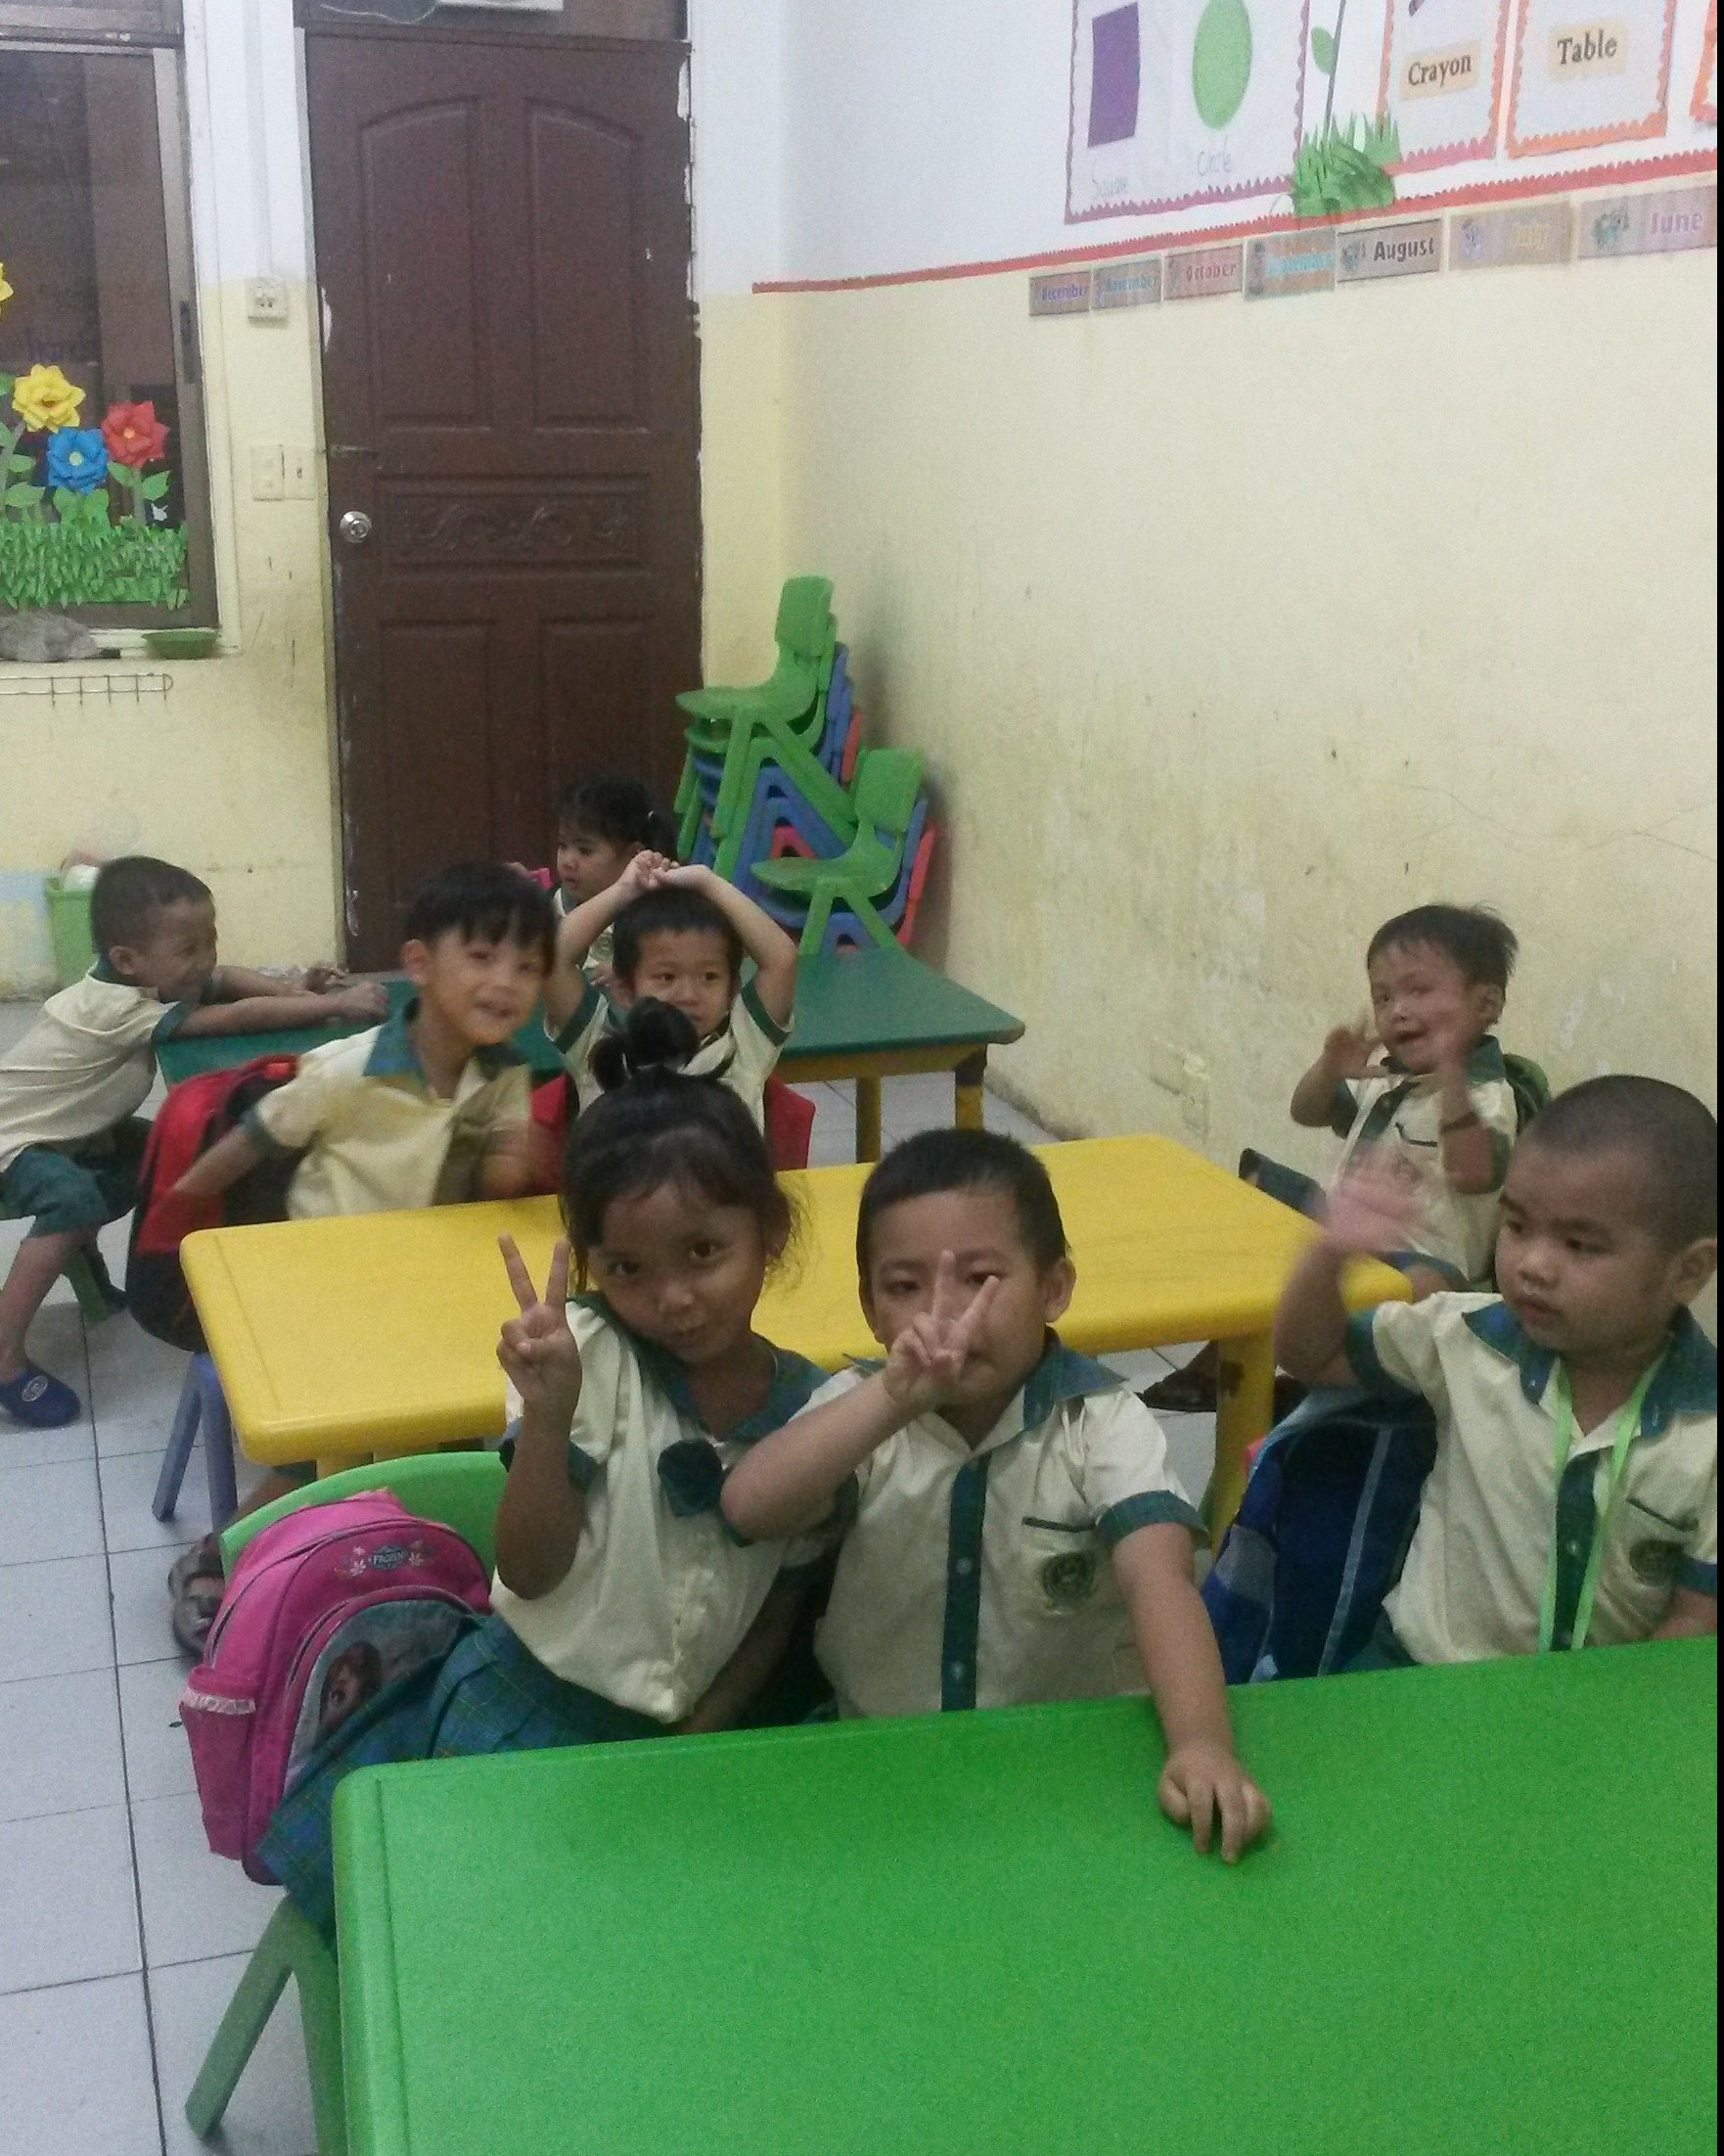 Students at school in Phnom Penh, Cambodia